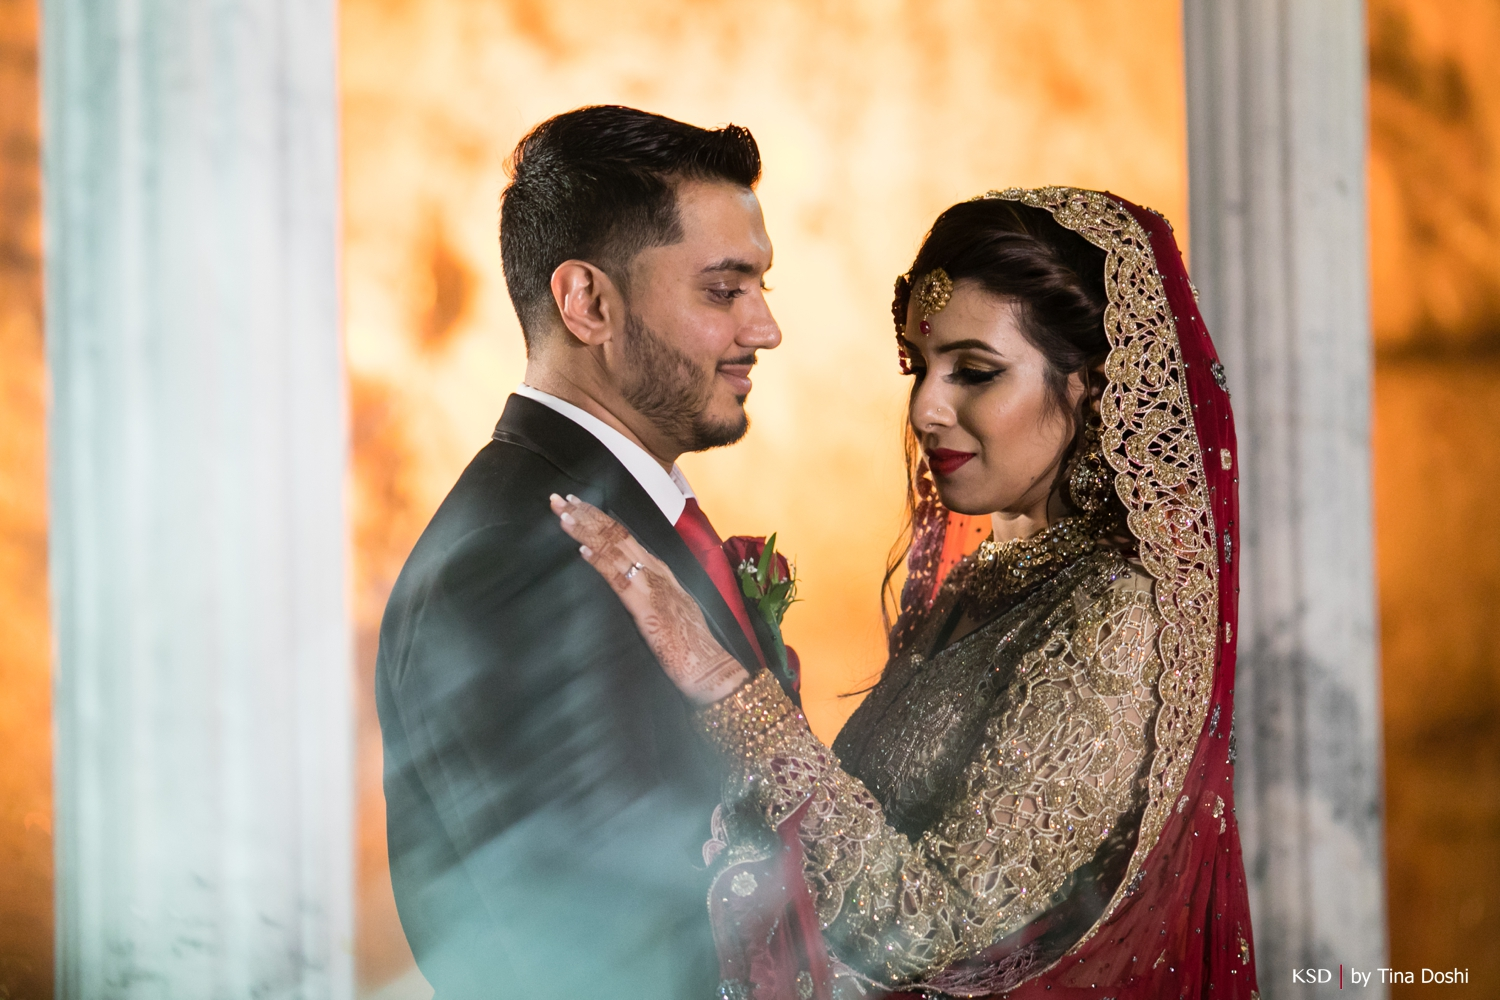 nj_south_asian_wedding_0087